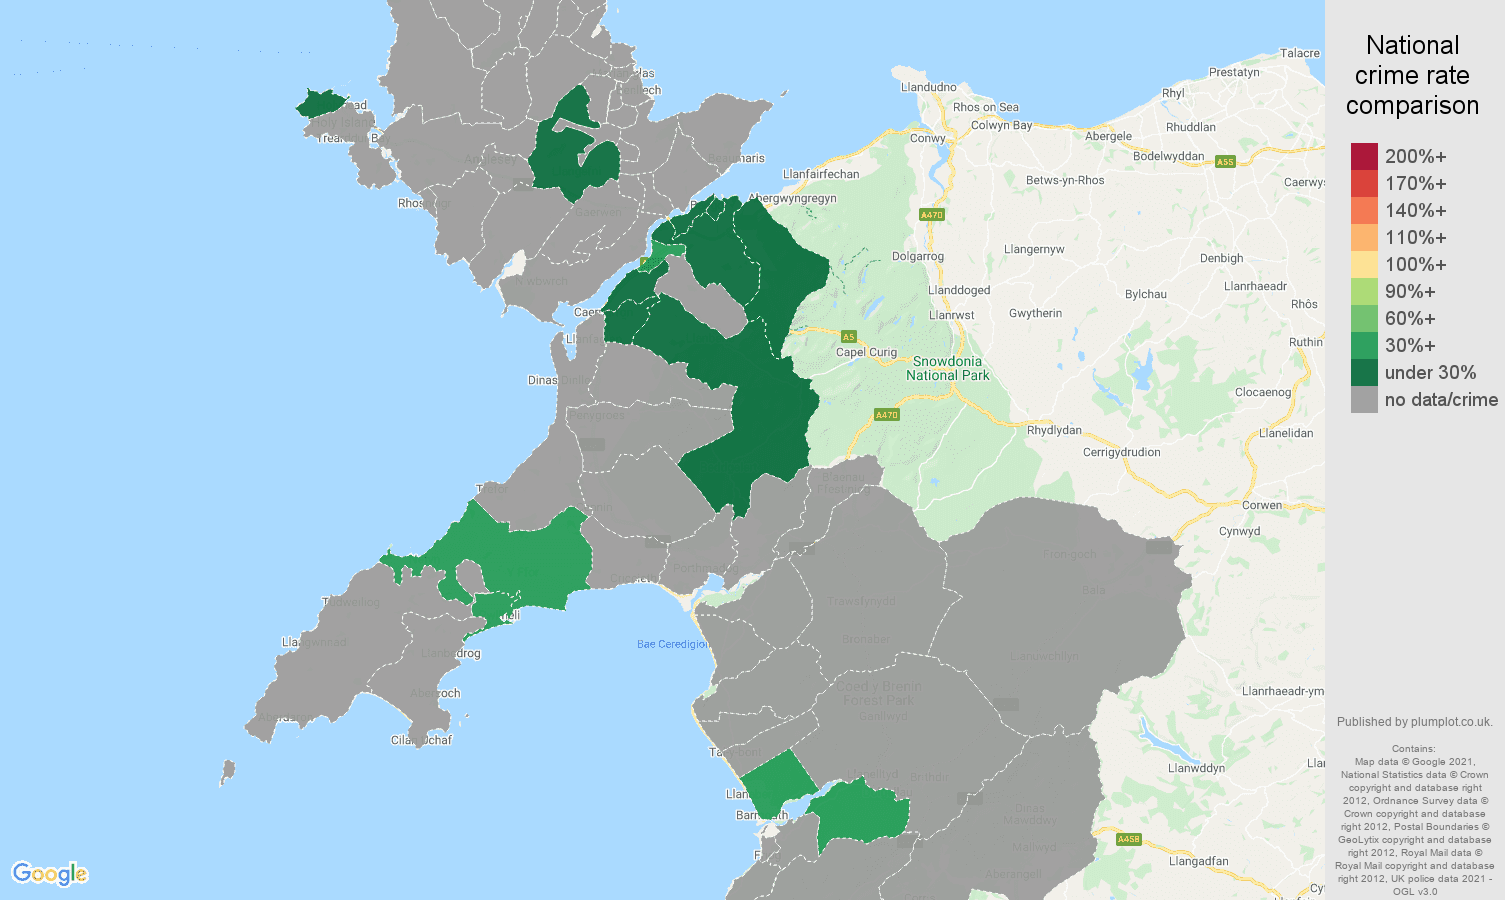 Gwynedd robbery crime rate comparison map